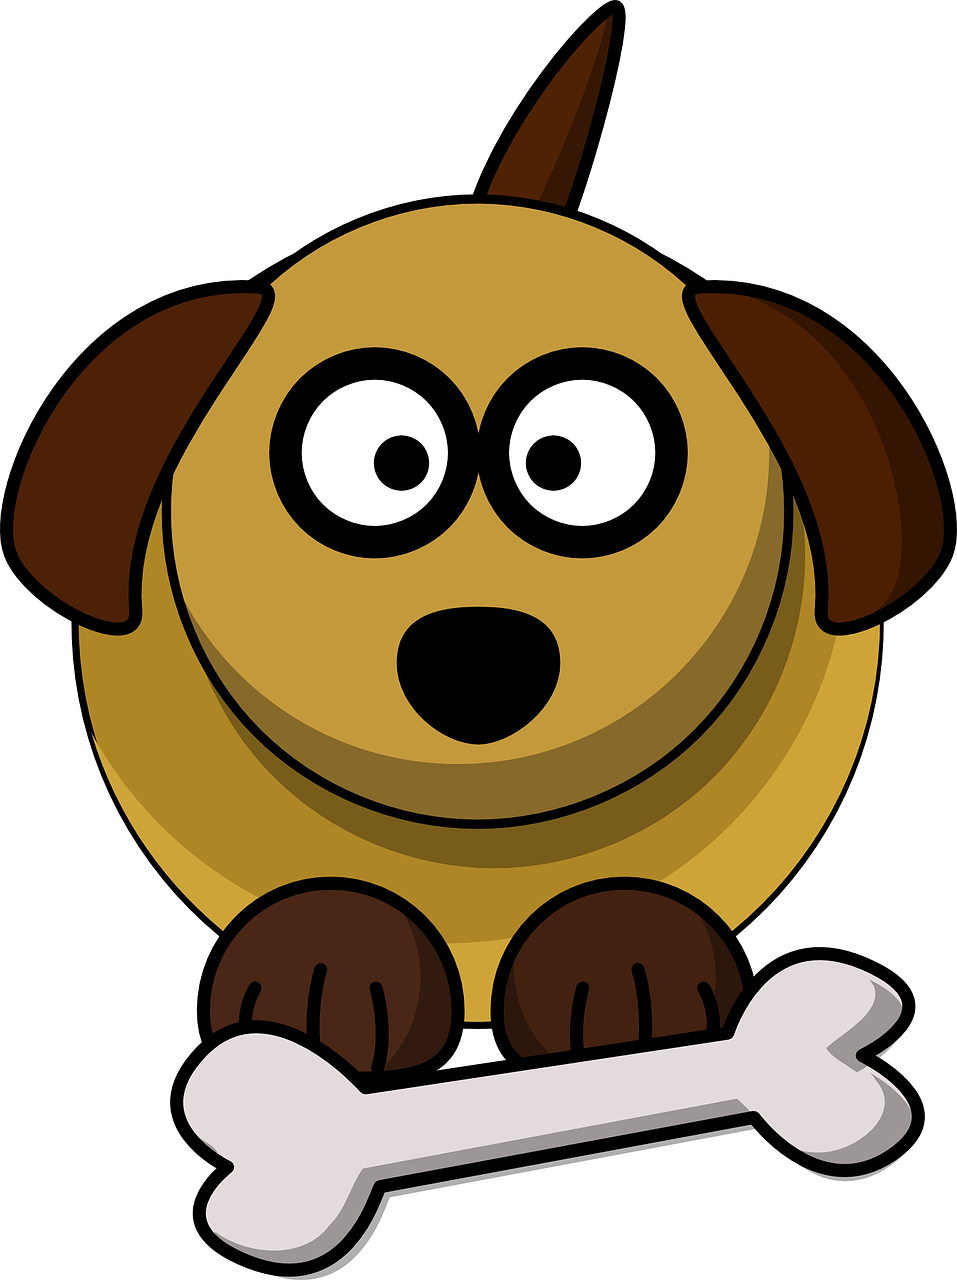 Clipart of a dog with a bone